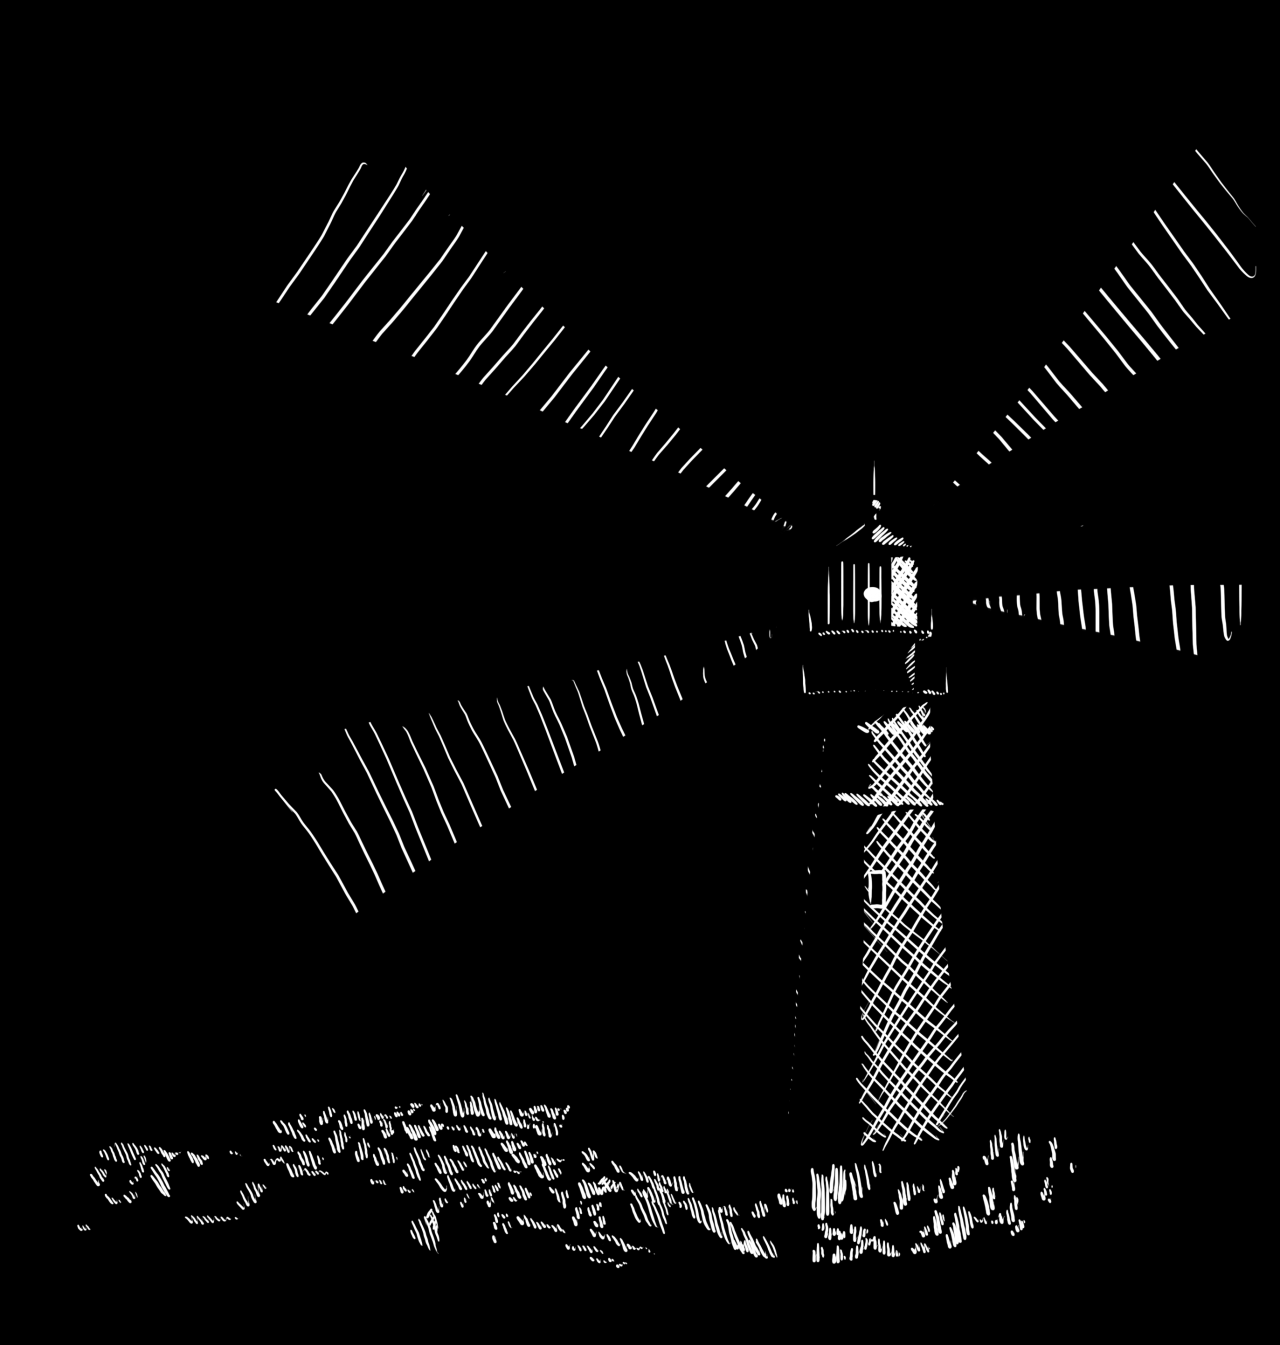 %26%238220%3BThe+Lighthouse%26%238221%3B%3A+A+mesmerizing+gem